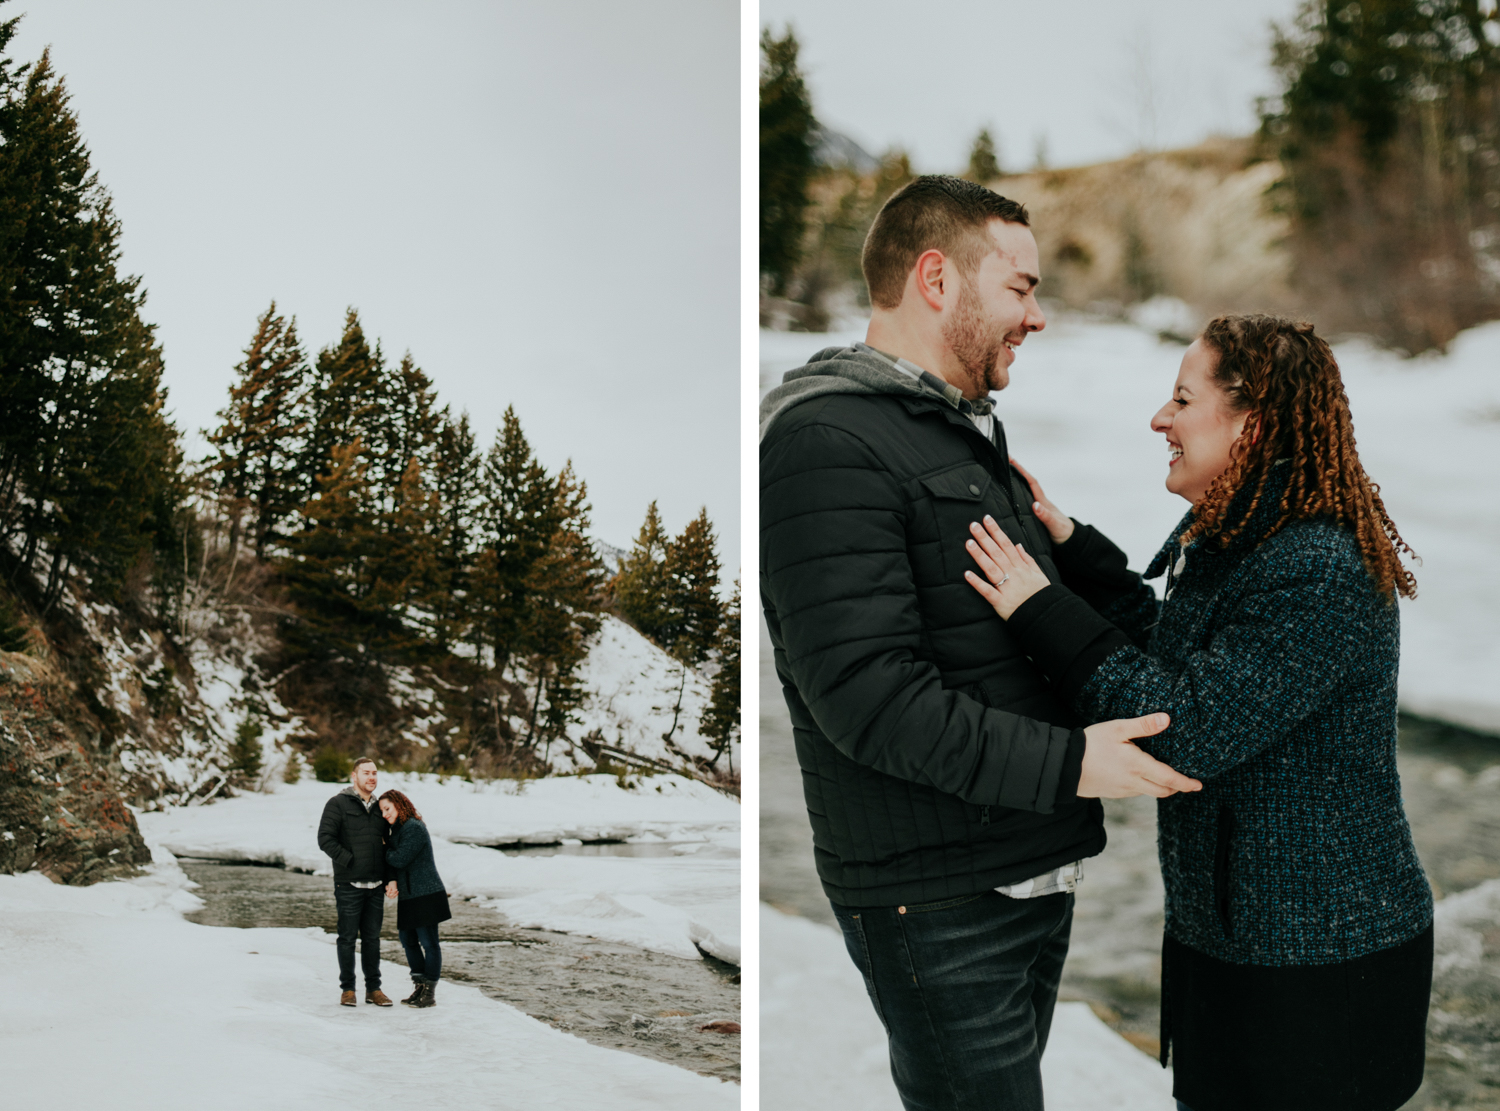 waterton-photographer-love-and-be-loved-photography-trent-danielle-engagement-winter-picture-image-photo-61.jpg